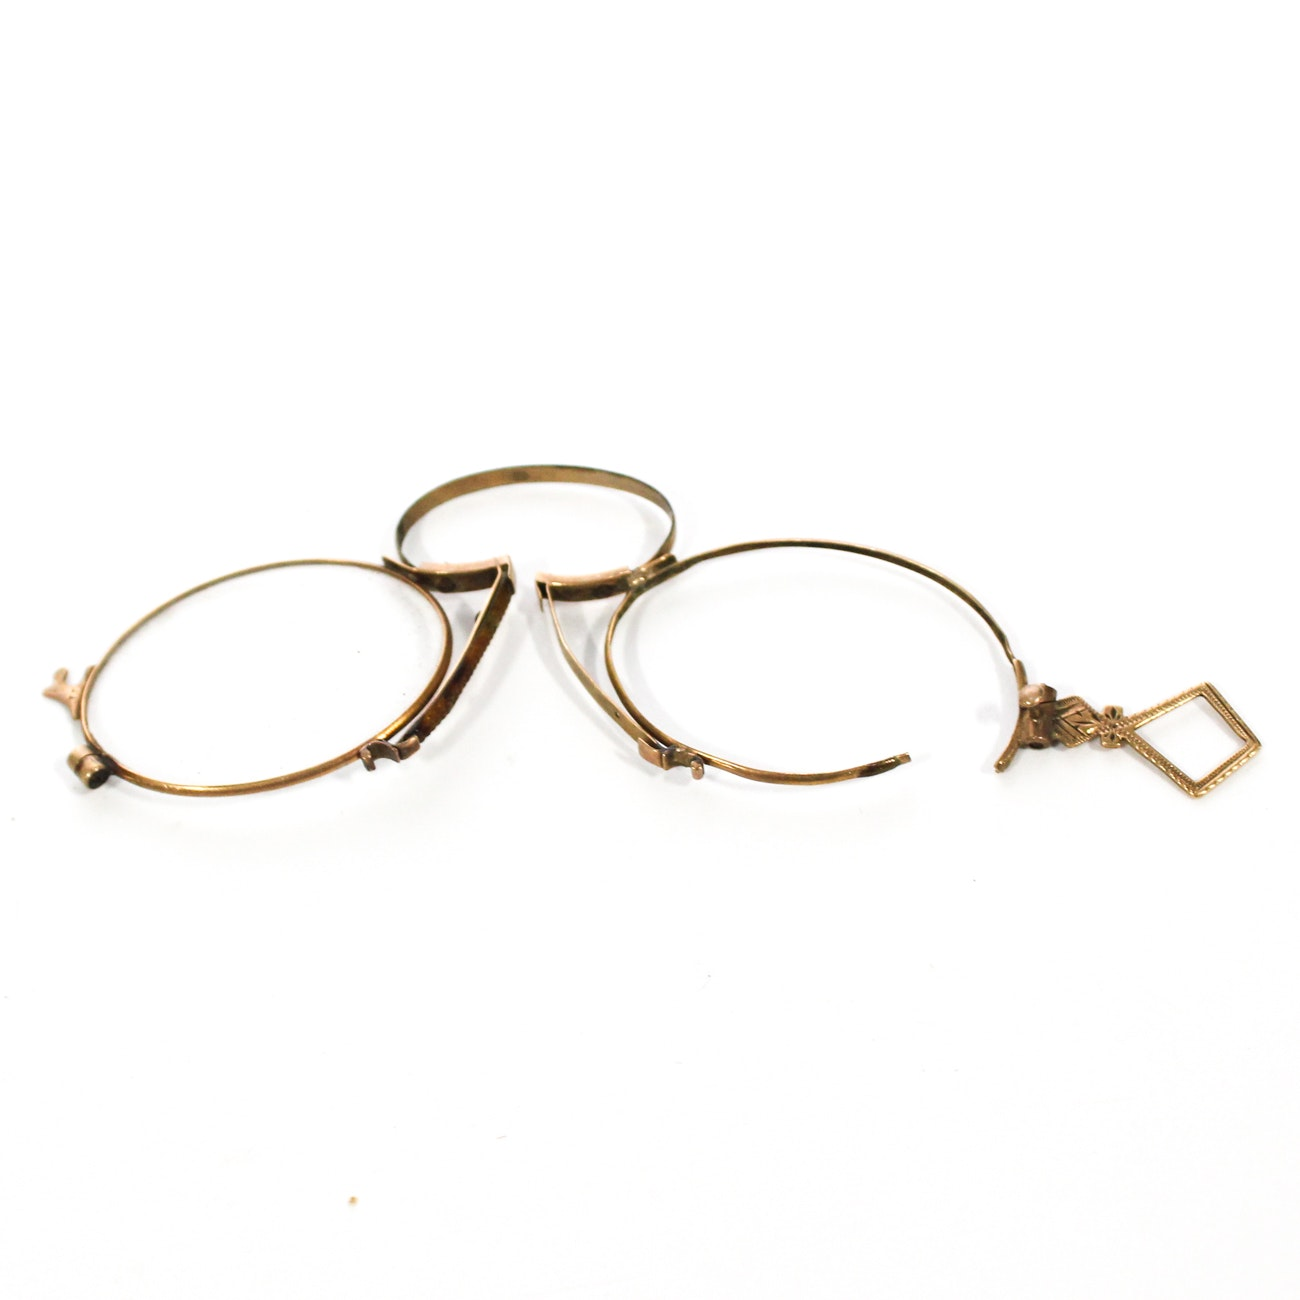 Pair of Victorian Pince Nez and Case, Late 19th Century